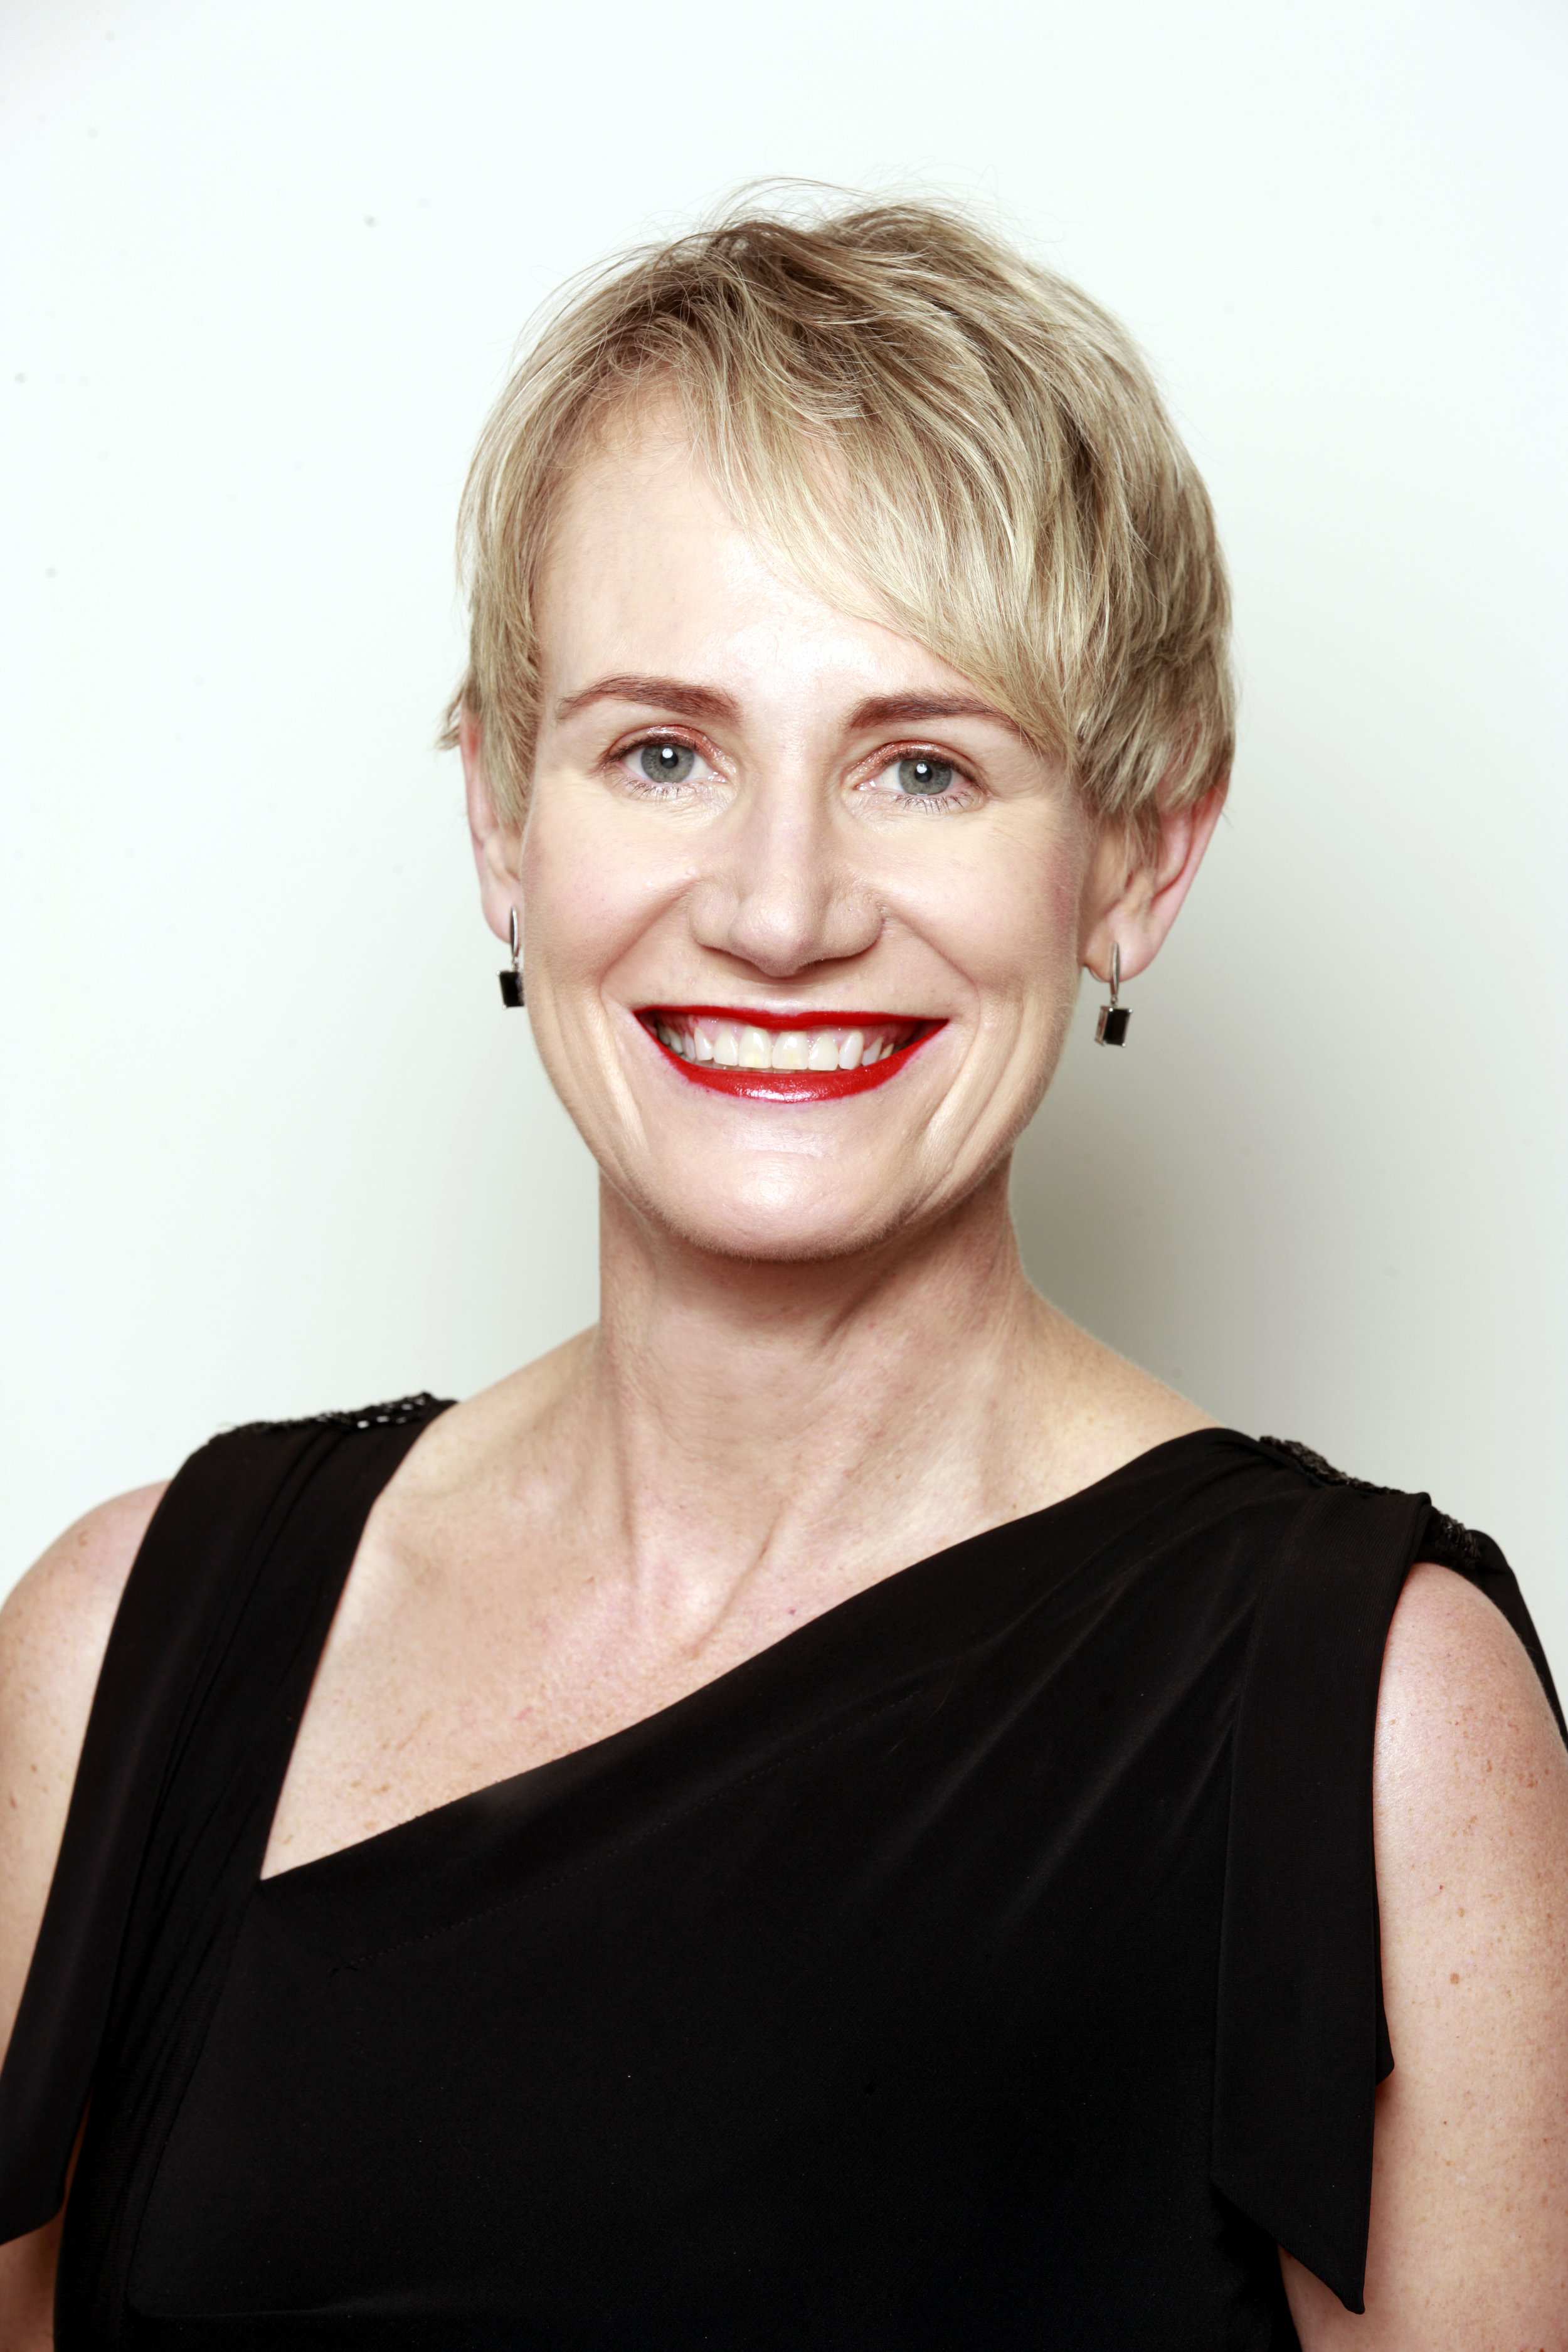 jacqui parle, director Consulting Services